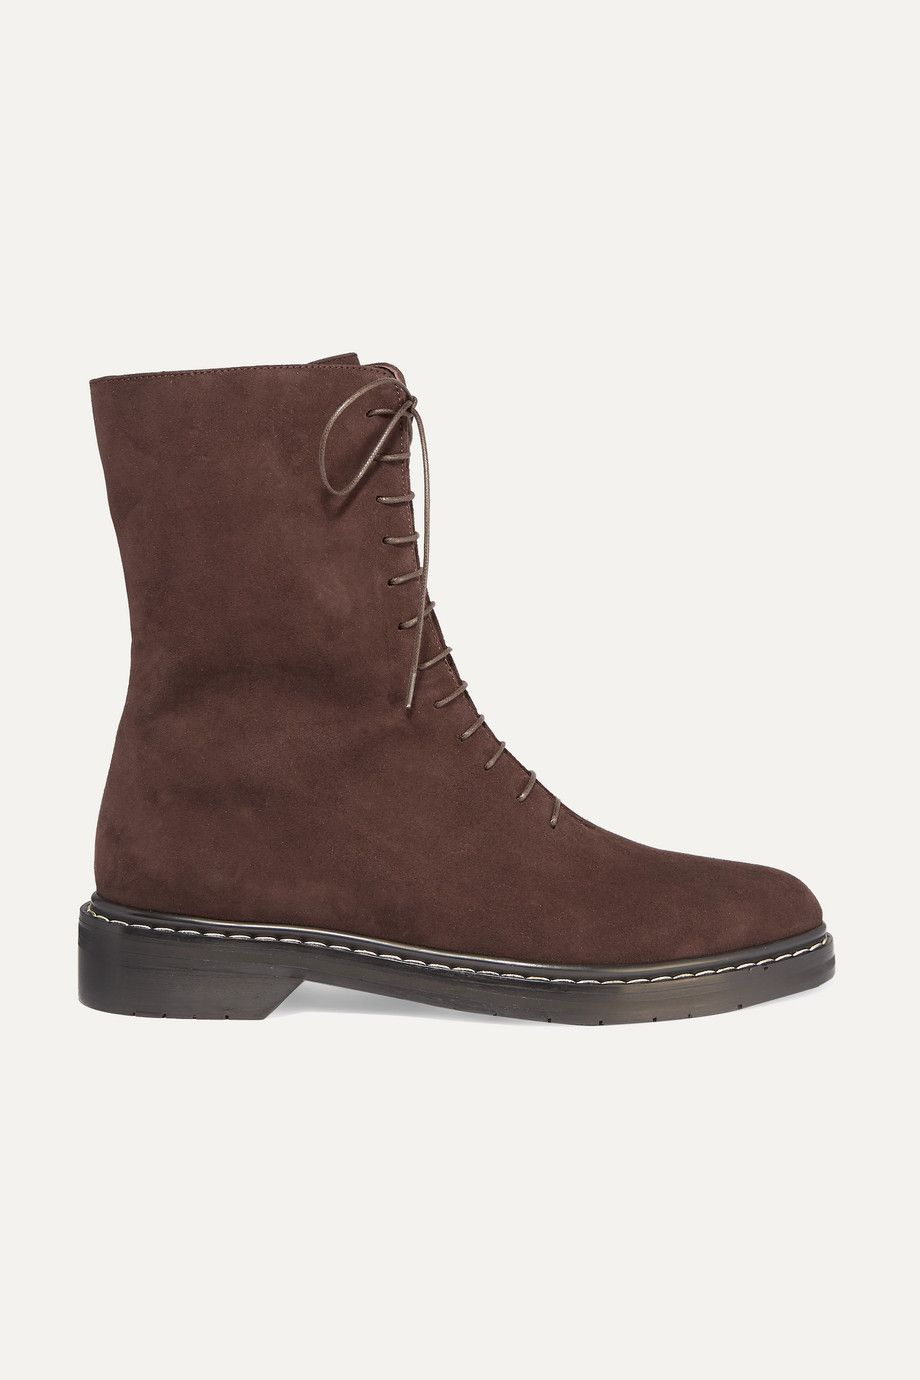 Fara Suede Ankle Boots